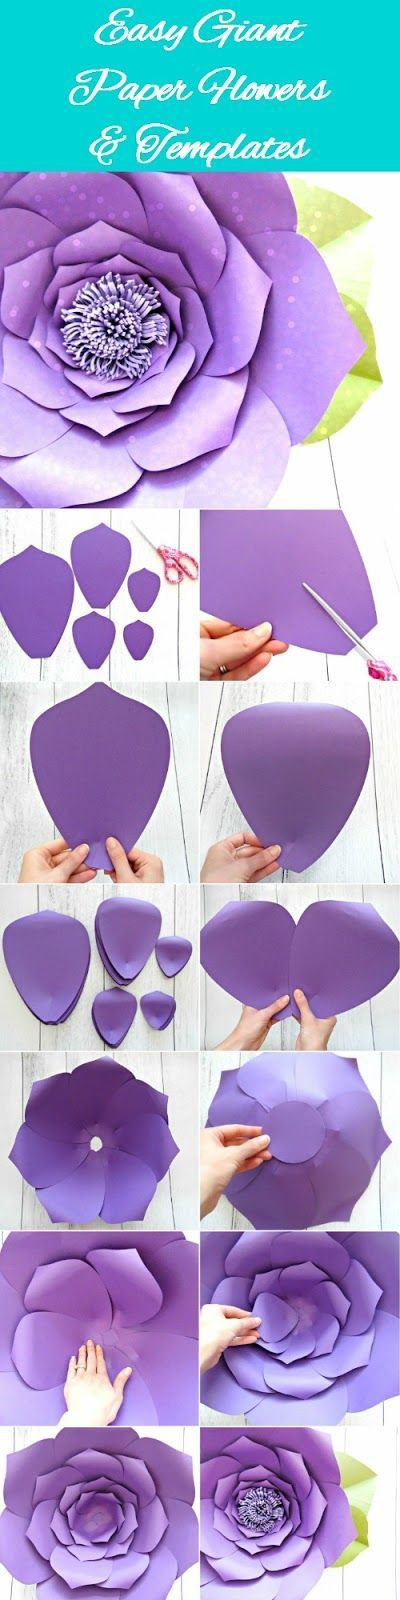 to Make Large Paper Flowers: Easy DIY Giant Paper Flower DIY Giant Paper flowers. Easy backdrop flower tutorial with printable flower templates.  It's no doubt that people want to DIY for their events like never before these days. There are so many wonderful tutorials out there and I want to share the easiest method I've found for building these popular